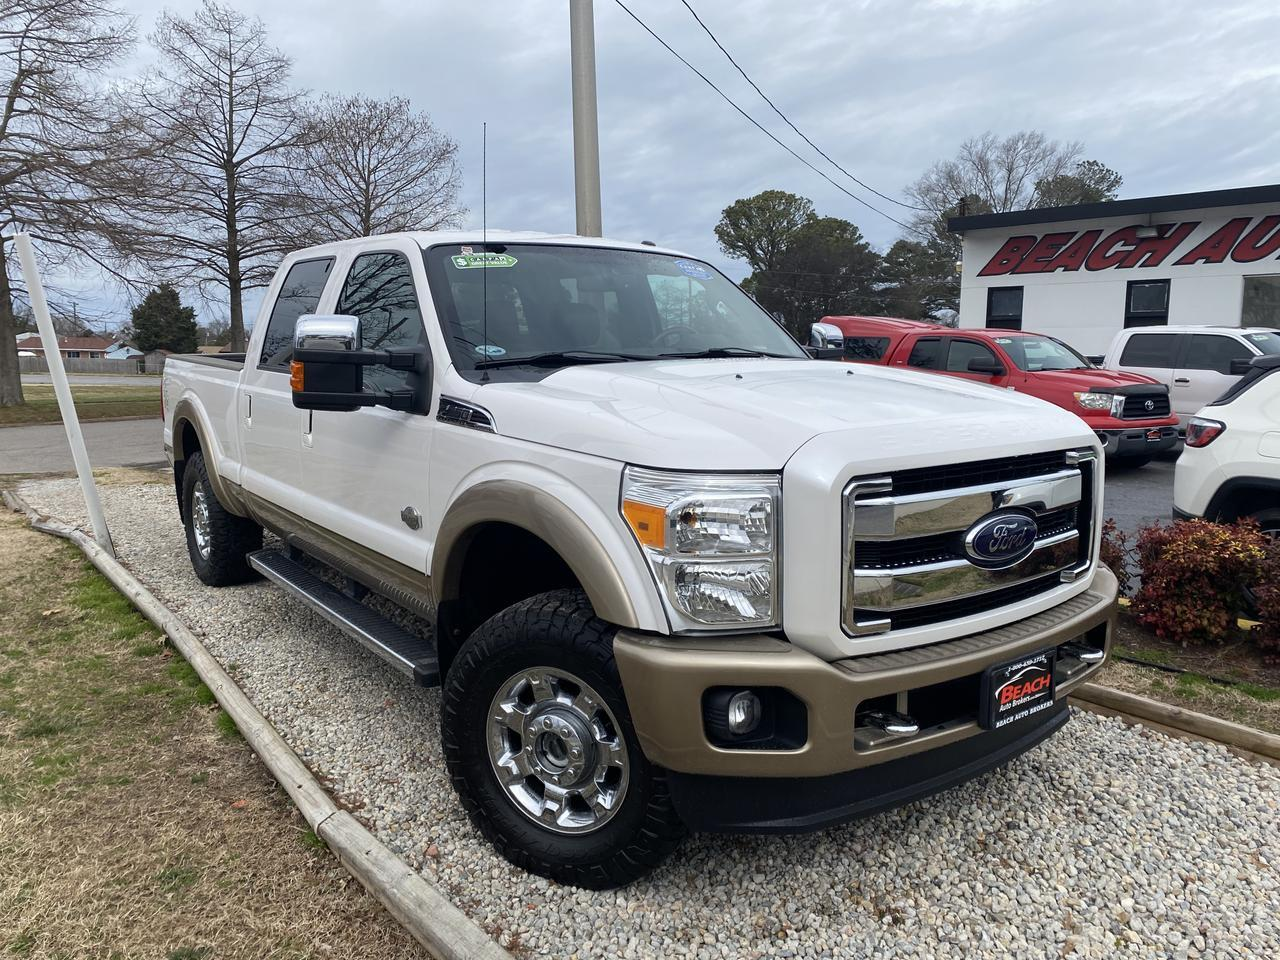 2012 FORD F-250 SD KING RACH CREW CAB 4X4, WARRANTY, LEATHER, SUNROOF, HEATED SEATS, BACKUP CAM, PARKING SENSORS!